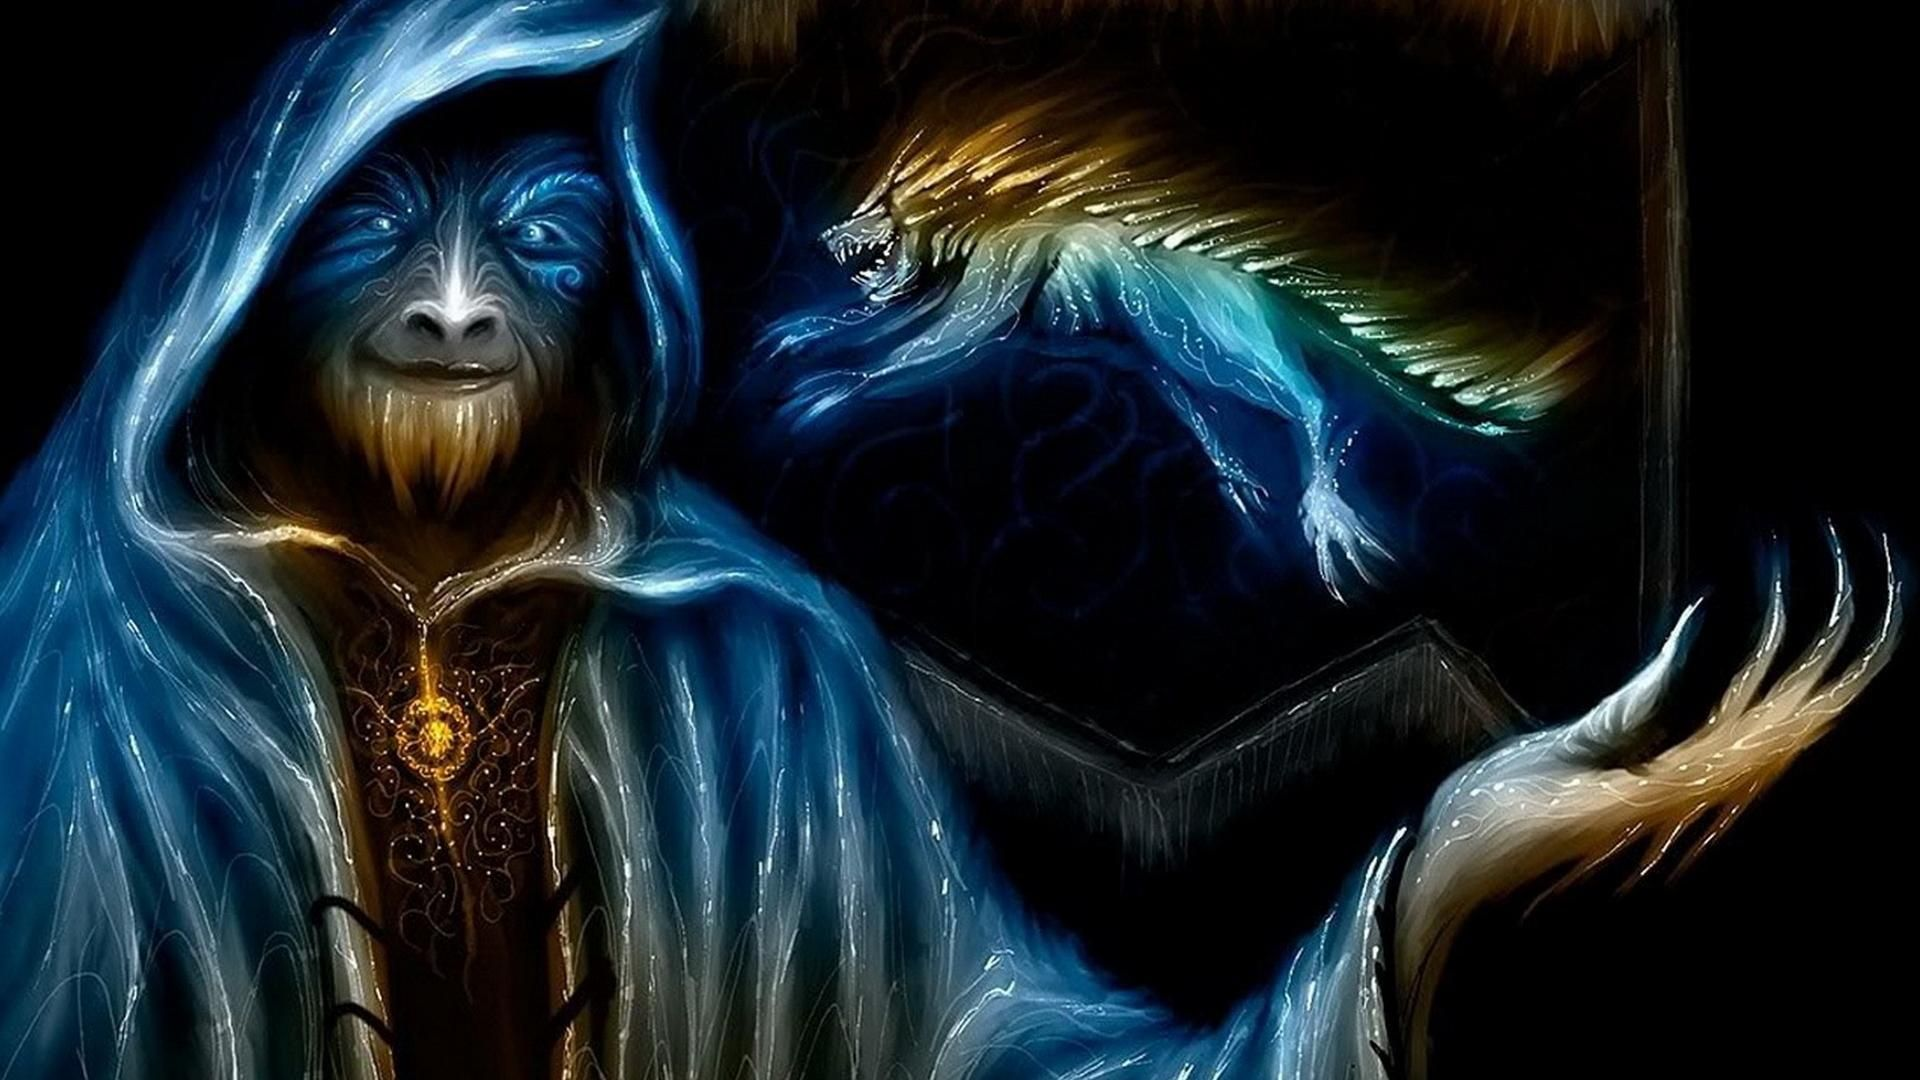 Wizard hd wallpaper 1080p for pc